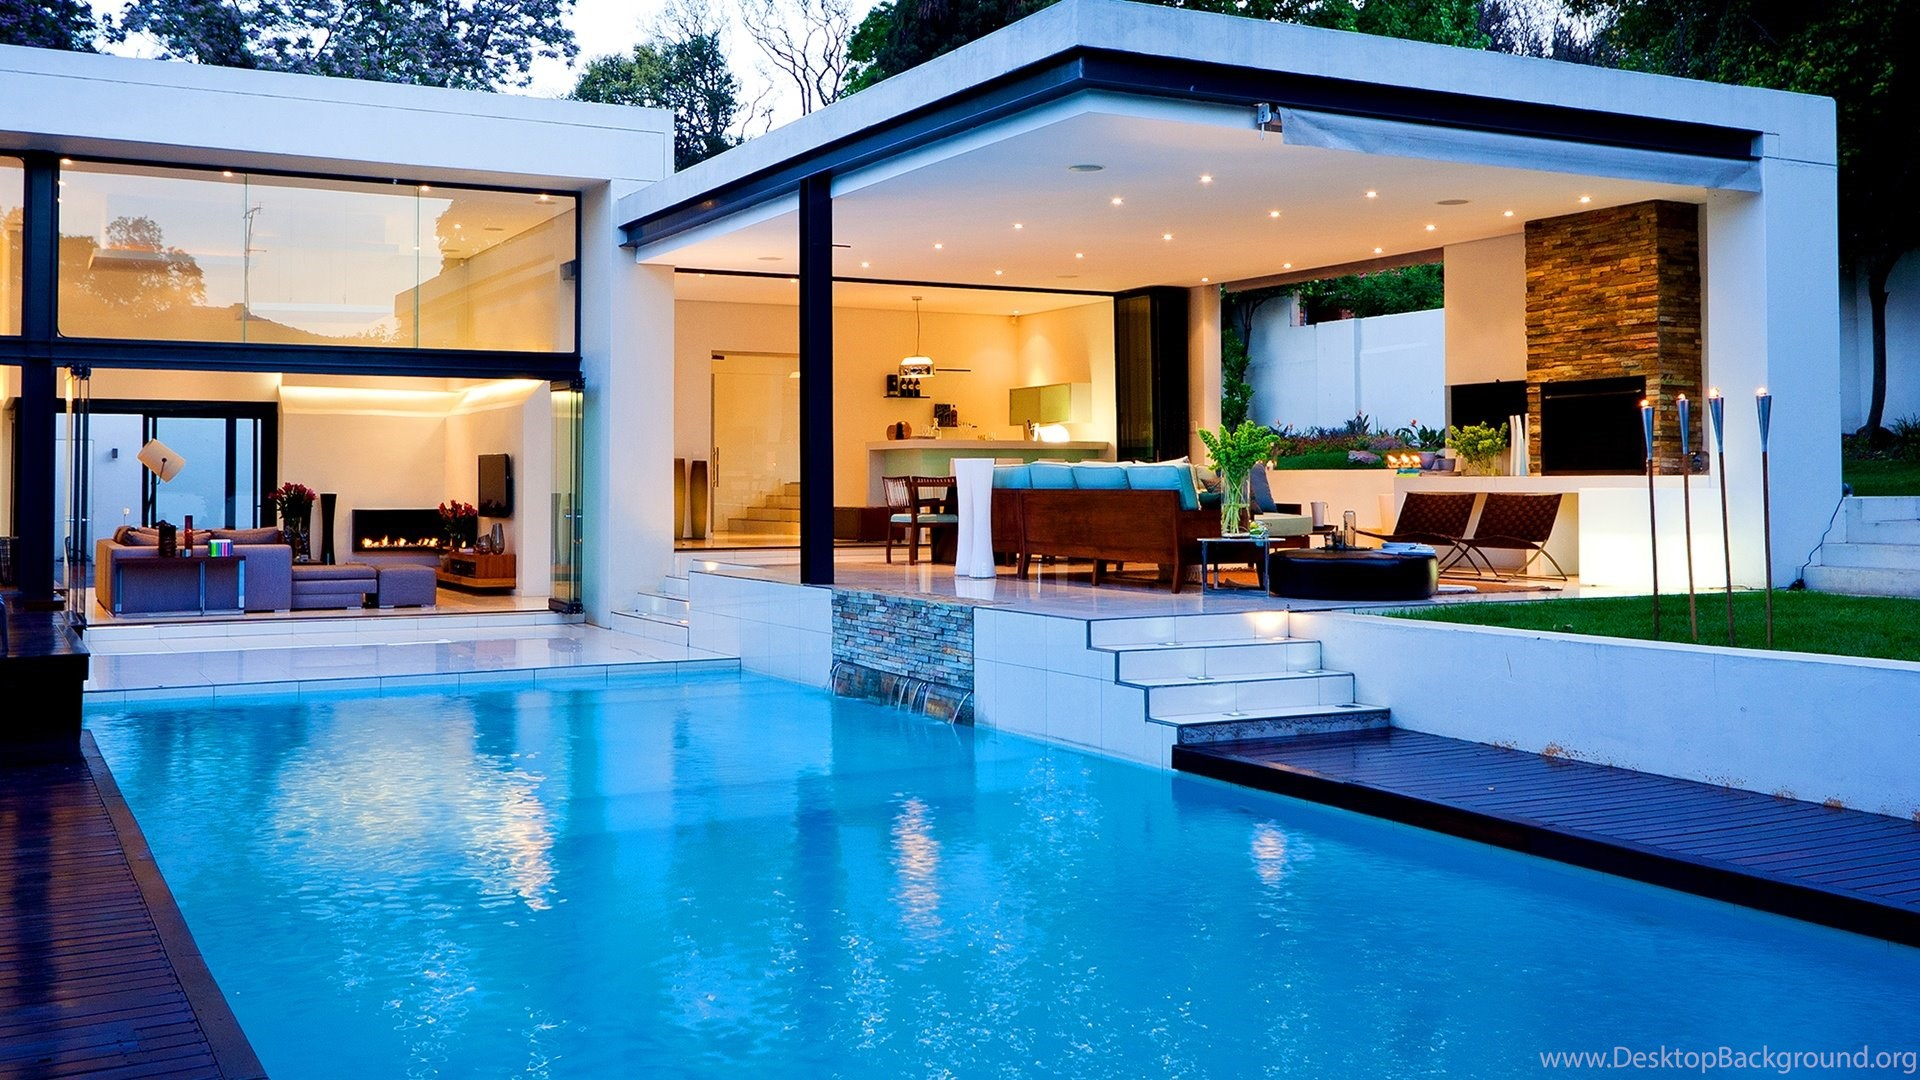 Luxury House With Pool Desktop Background